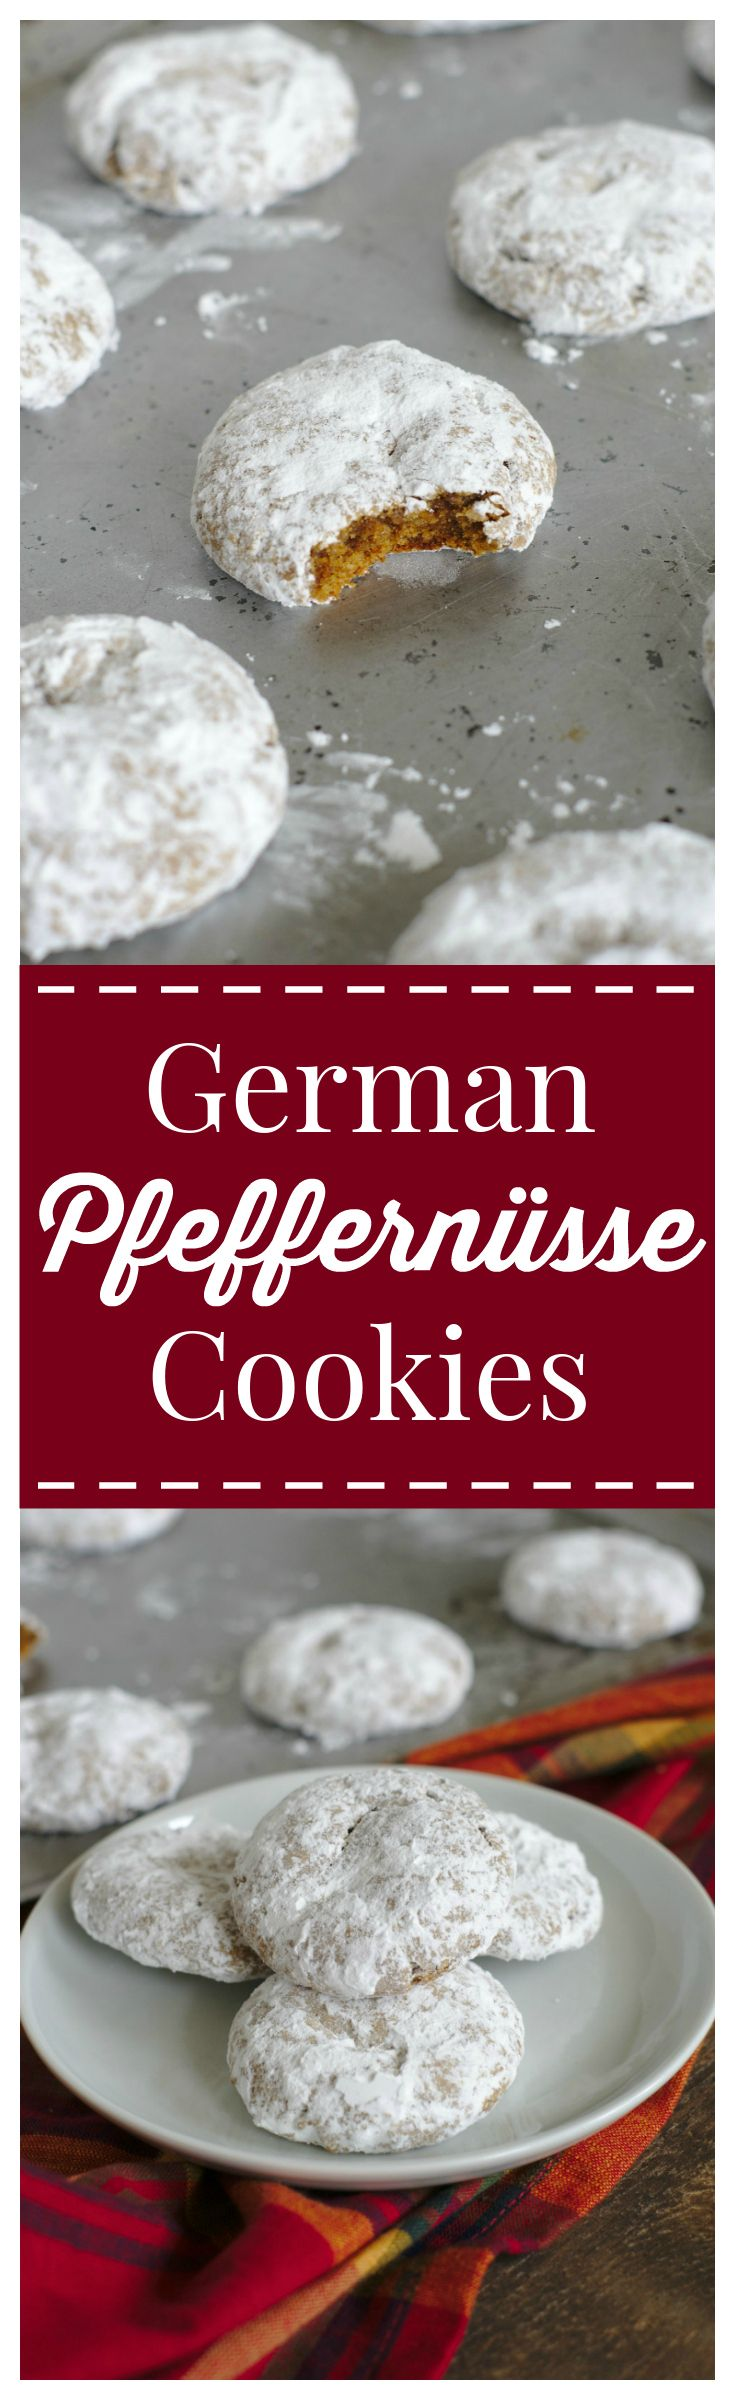 German Pfeffernusse Cookies – A traditional spiced German cookie covered in powdered sugar. The perfect cookie for a Christmas cookie exchange!